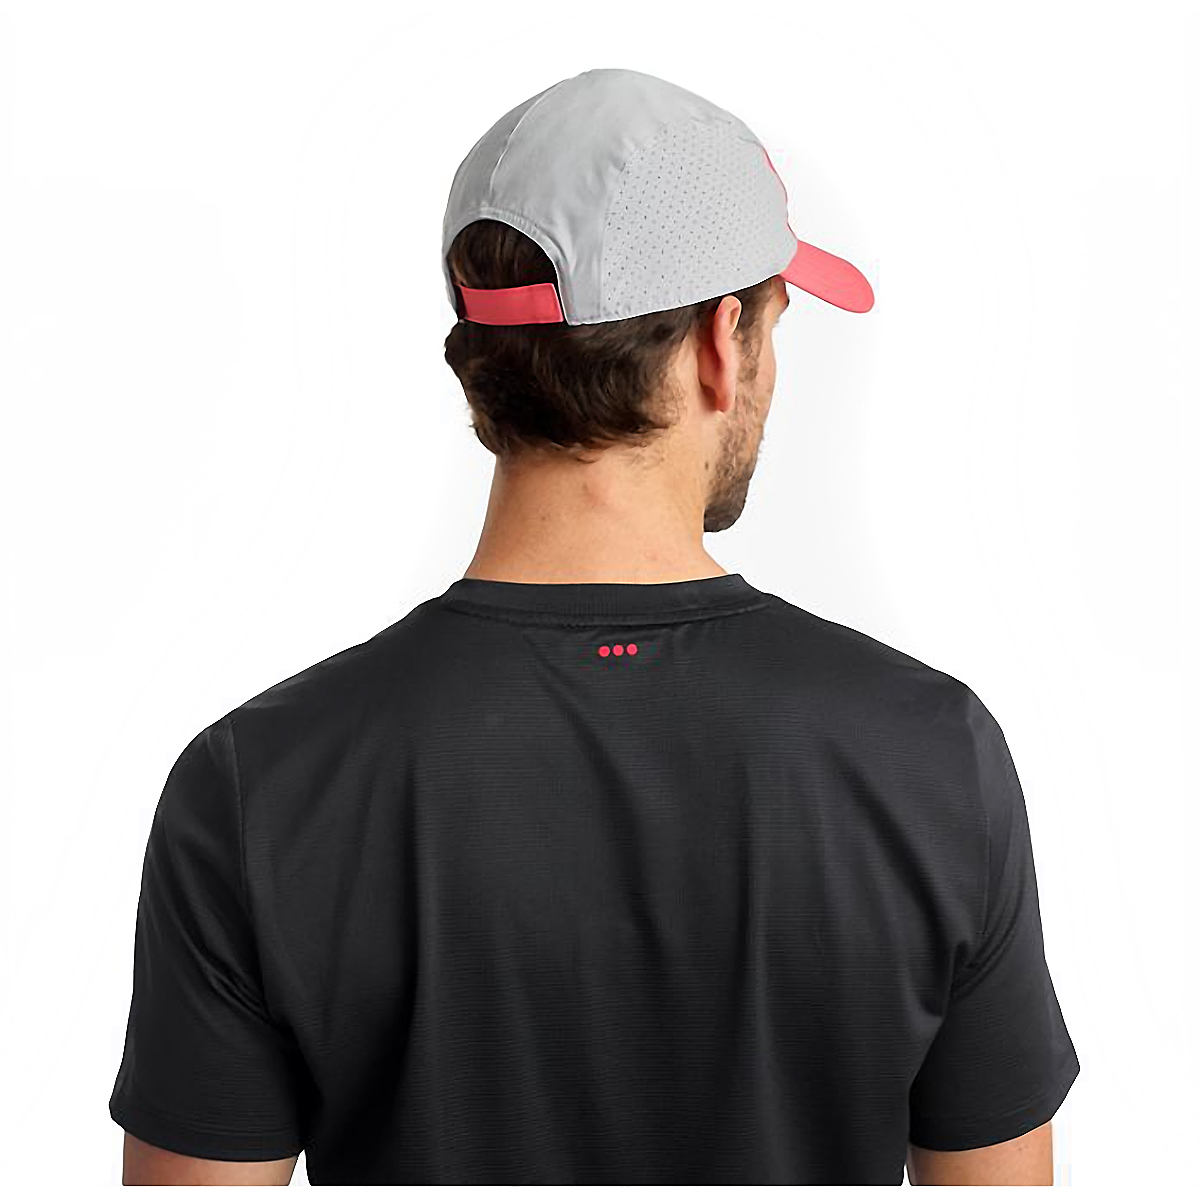 Saucony Outpace Hat - Color: Calypso Coral, Calypso Coral, large, image 4